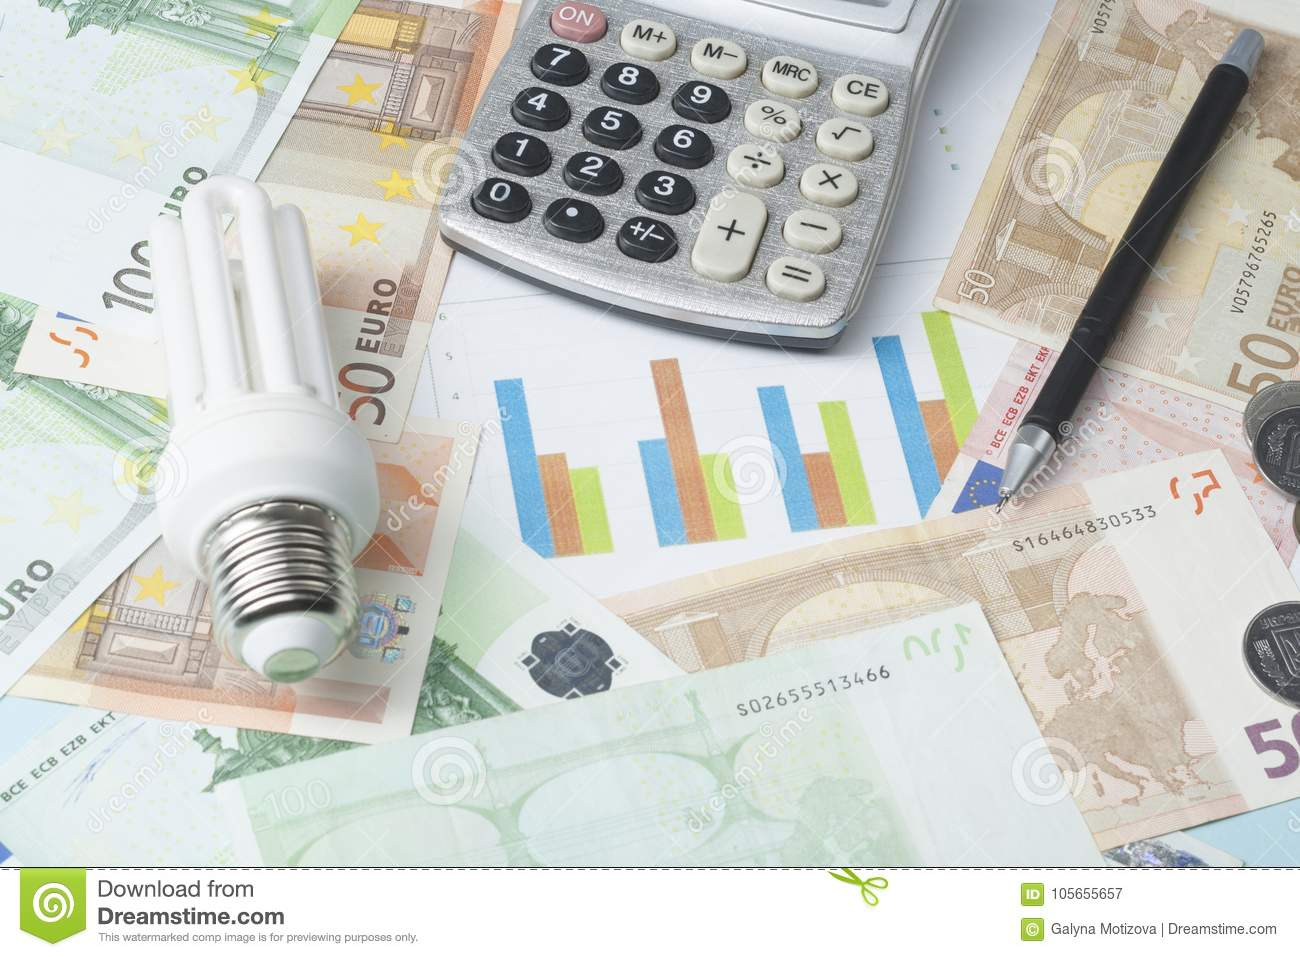 hight resolution of energy saving lamp chart and calculator on money background energy saving saving electricity concept